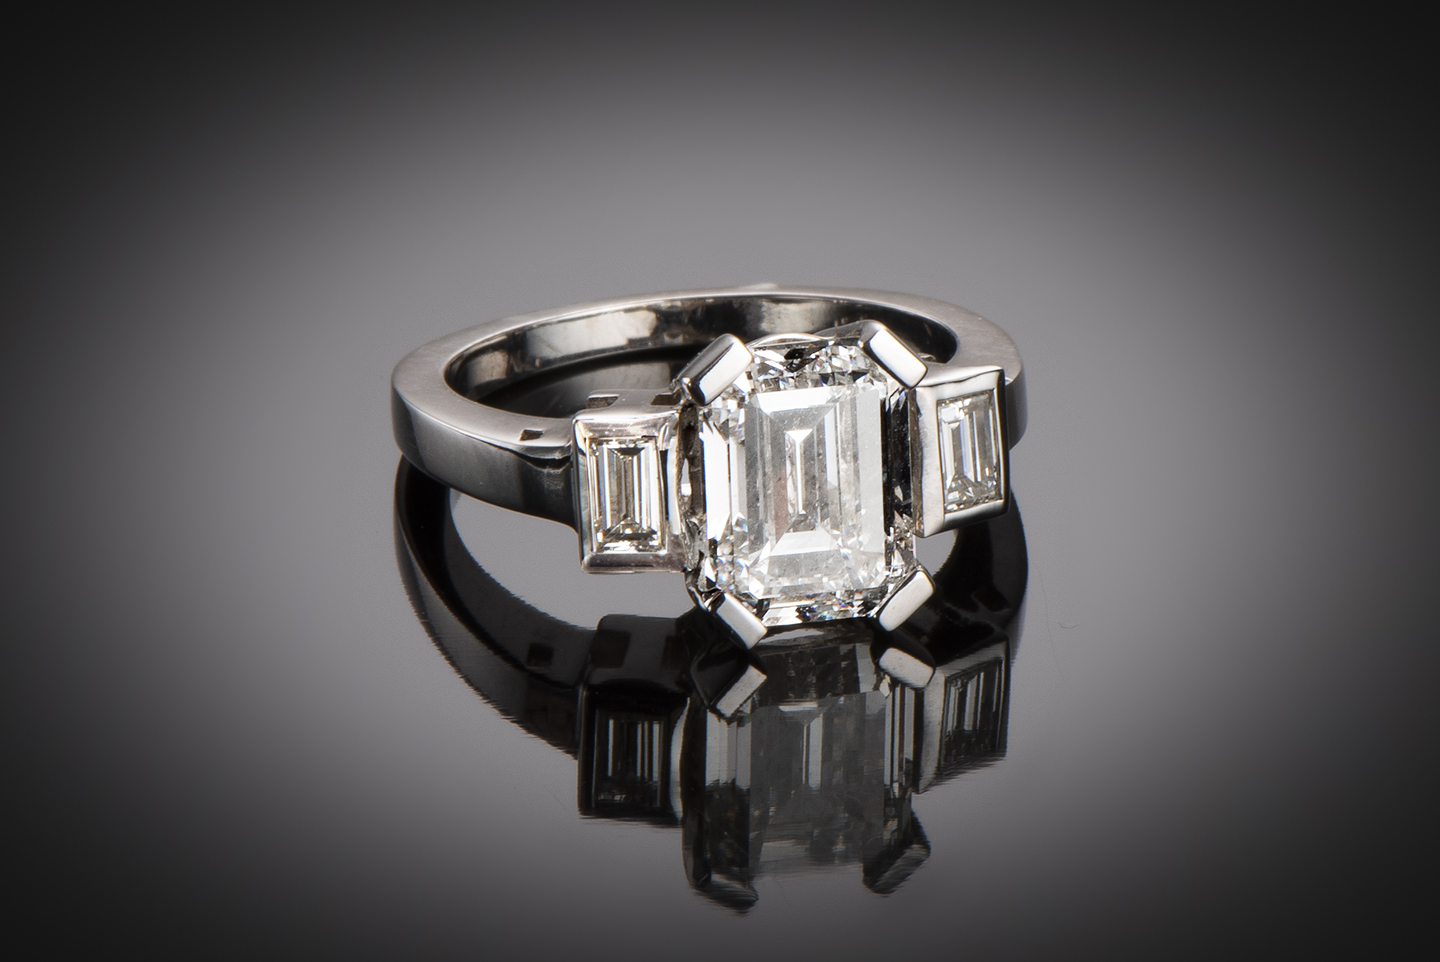 Bague solitaire diamant rectangle 3,03 carats (certificat LFG)-1